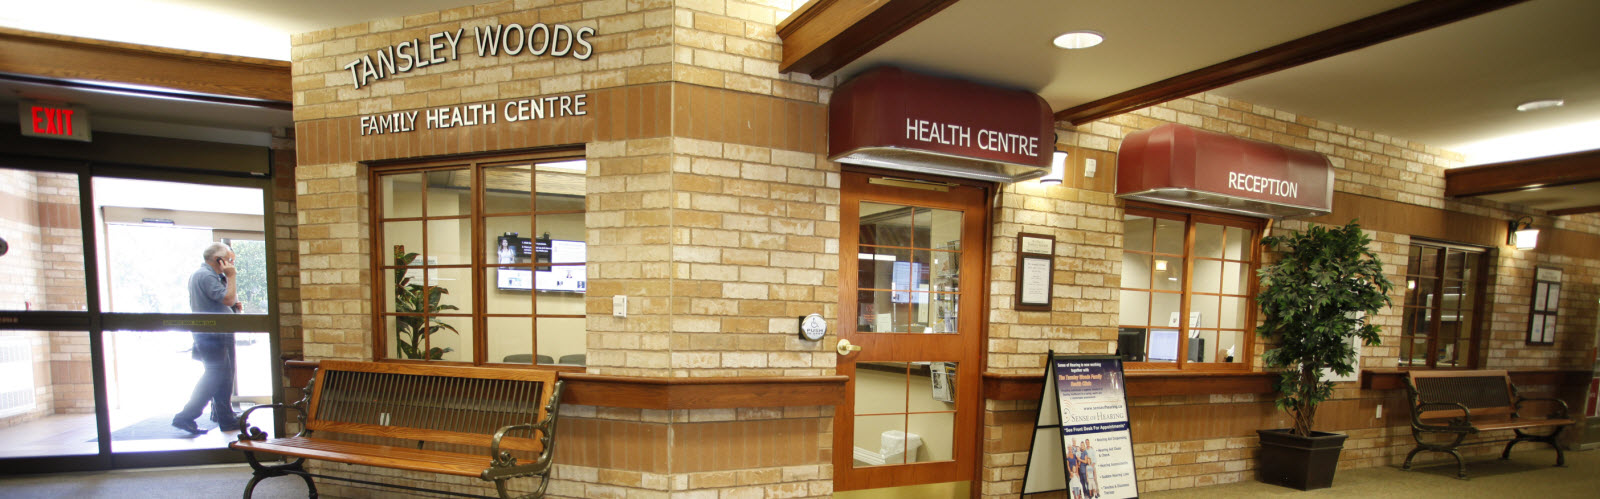 tansley-health-centre-slider.JPG